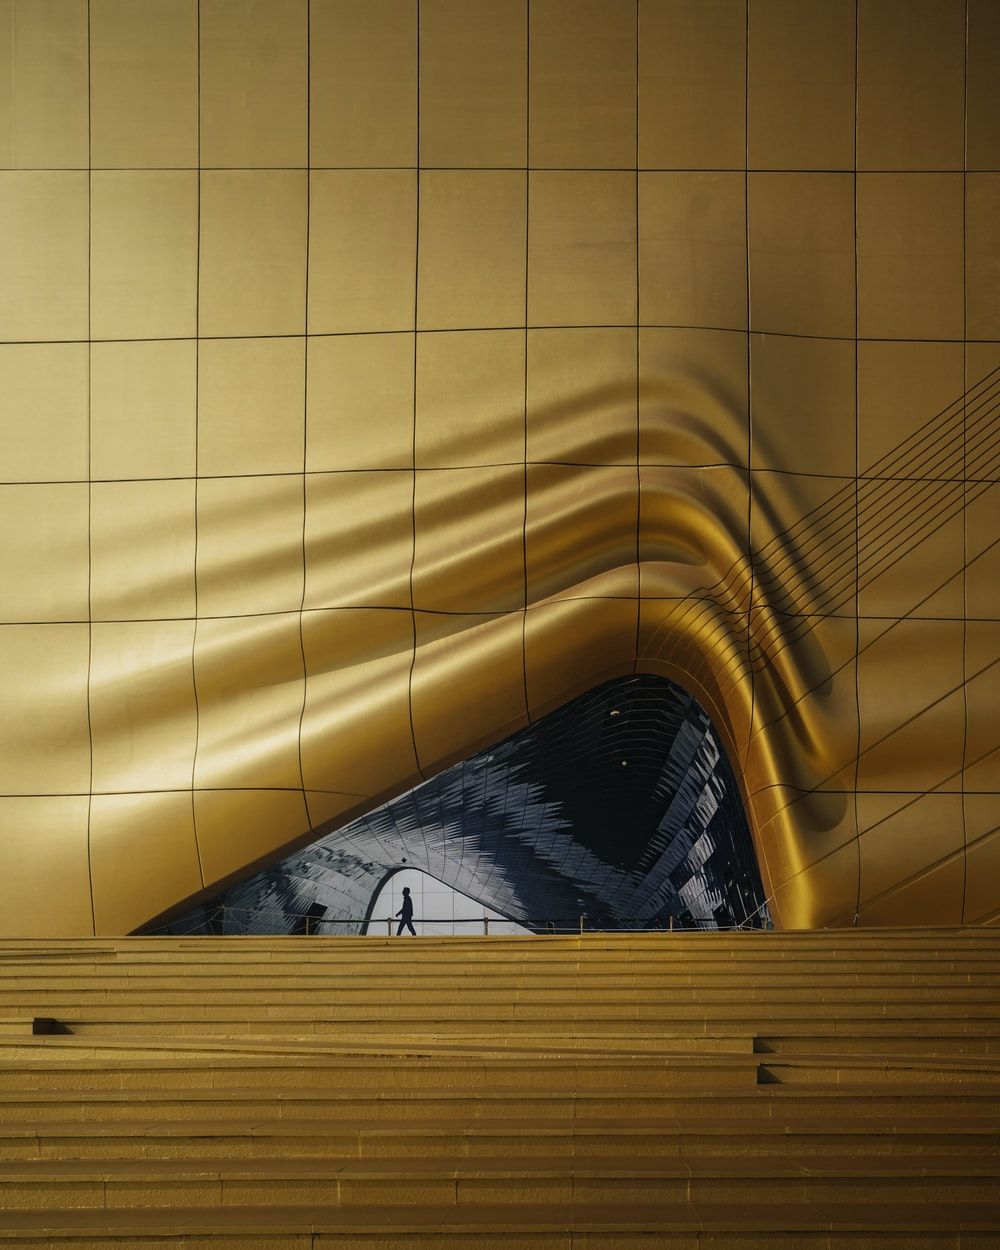 person in black and white shirt lying on yellow bed